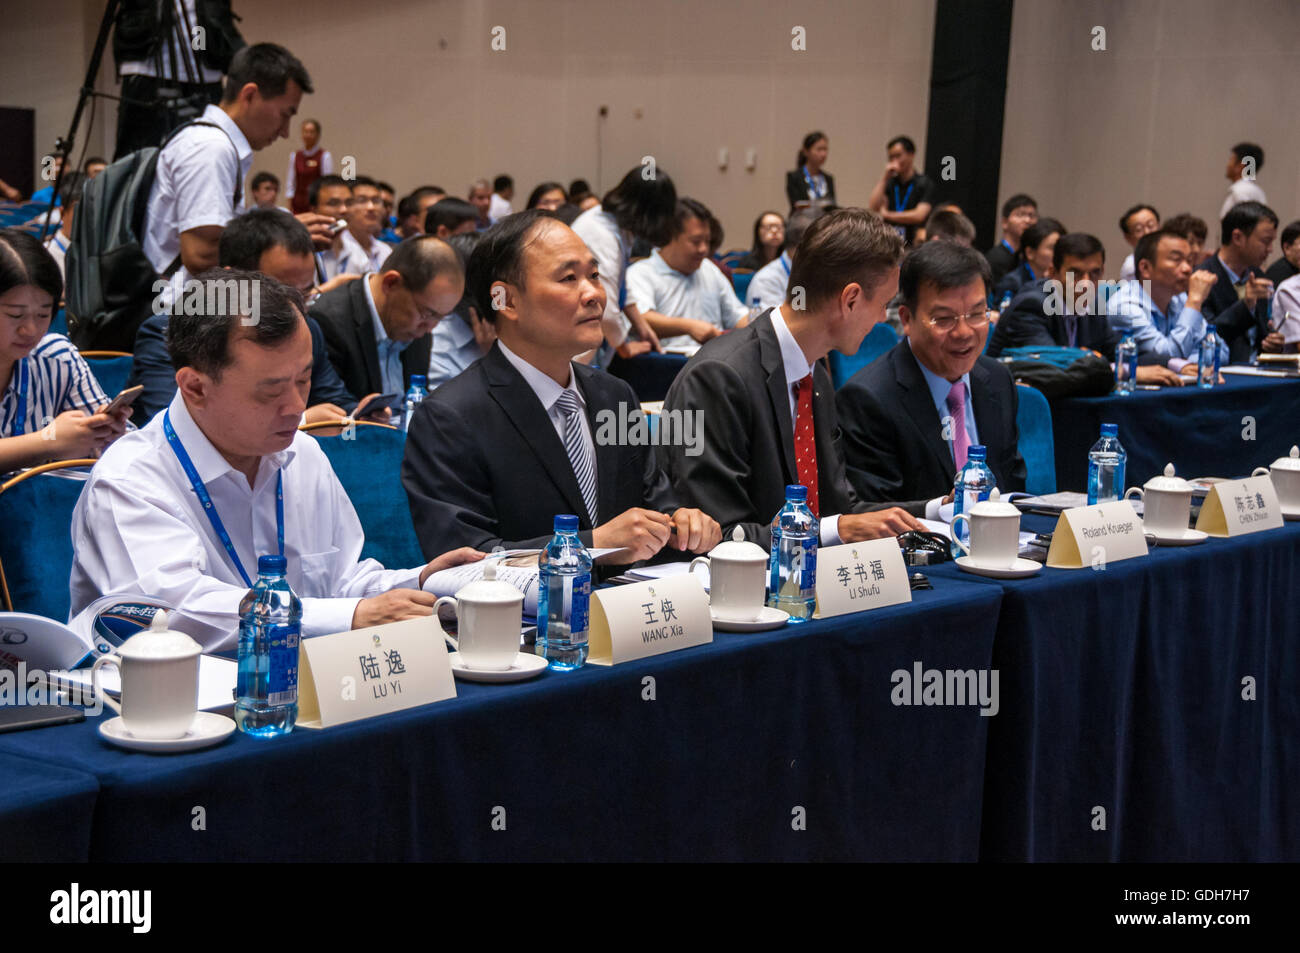 VIPs await the closing ceremony of the Global Automotive Forum in Chongqing 2016 - Stock Image